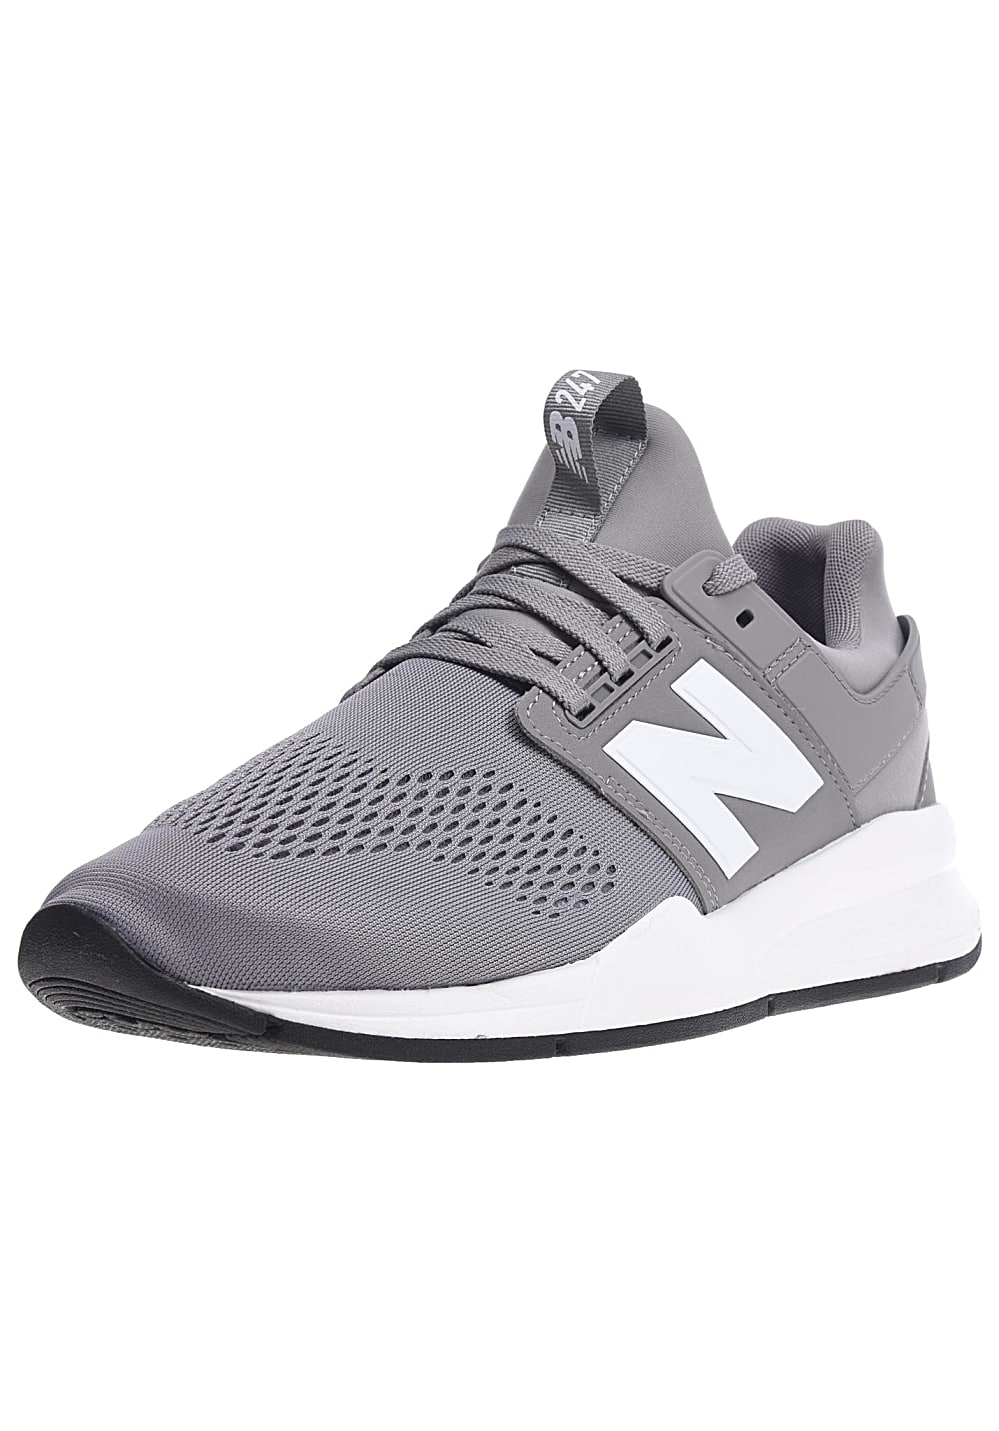 8607b76d NEW BALANCE MS247 D - Sneakers for Men - Grey